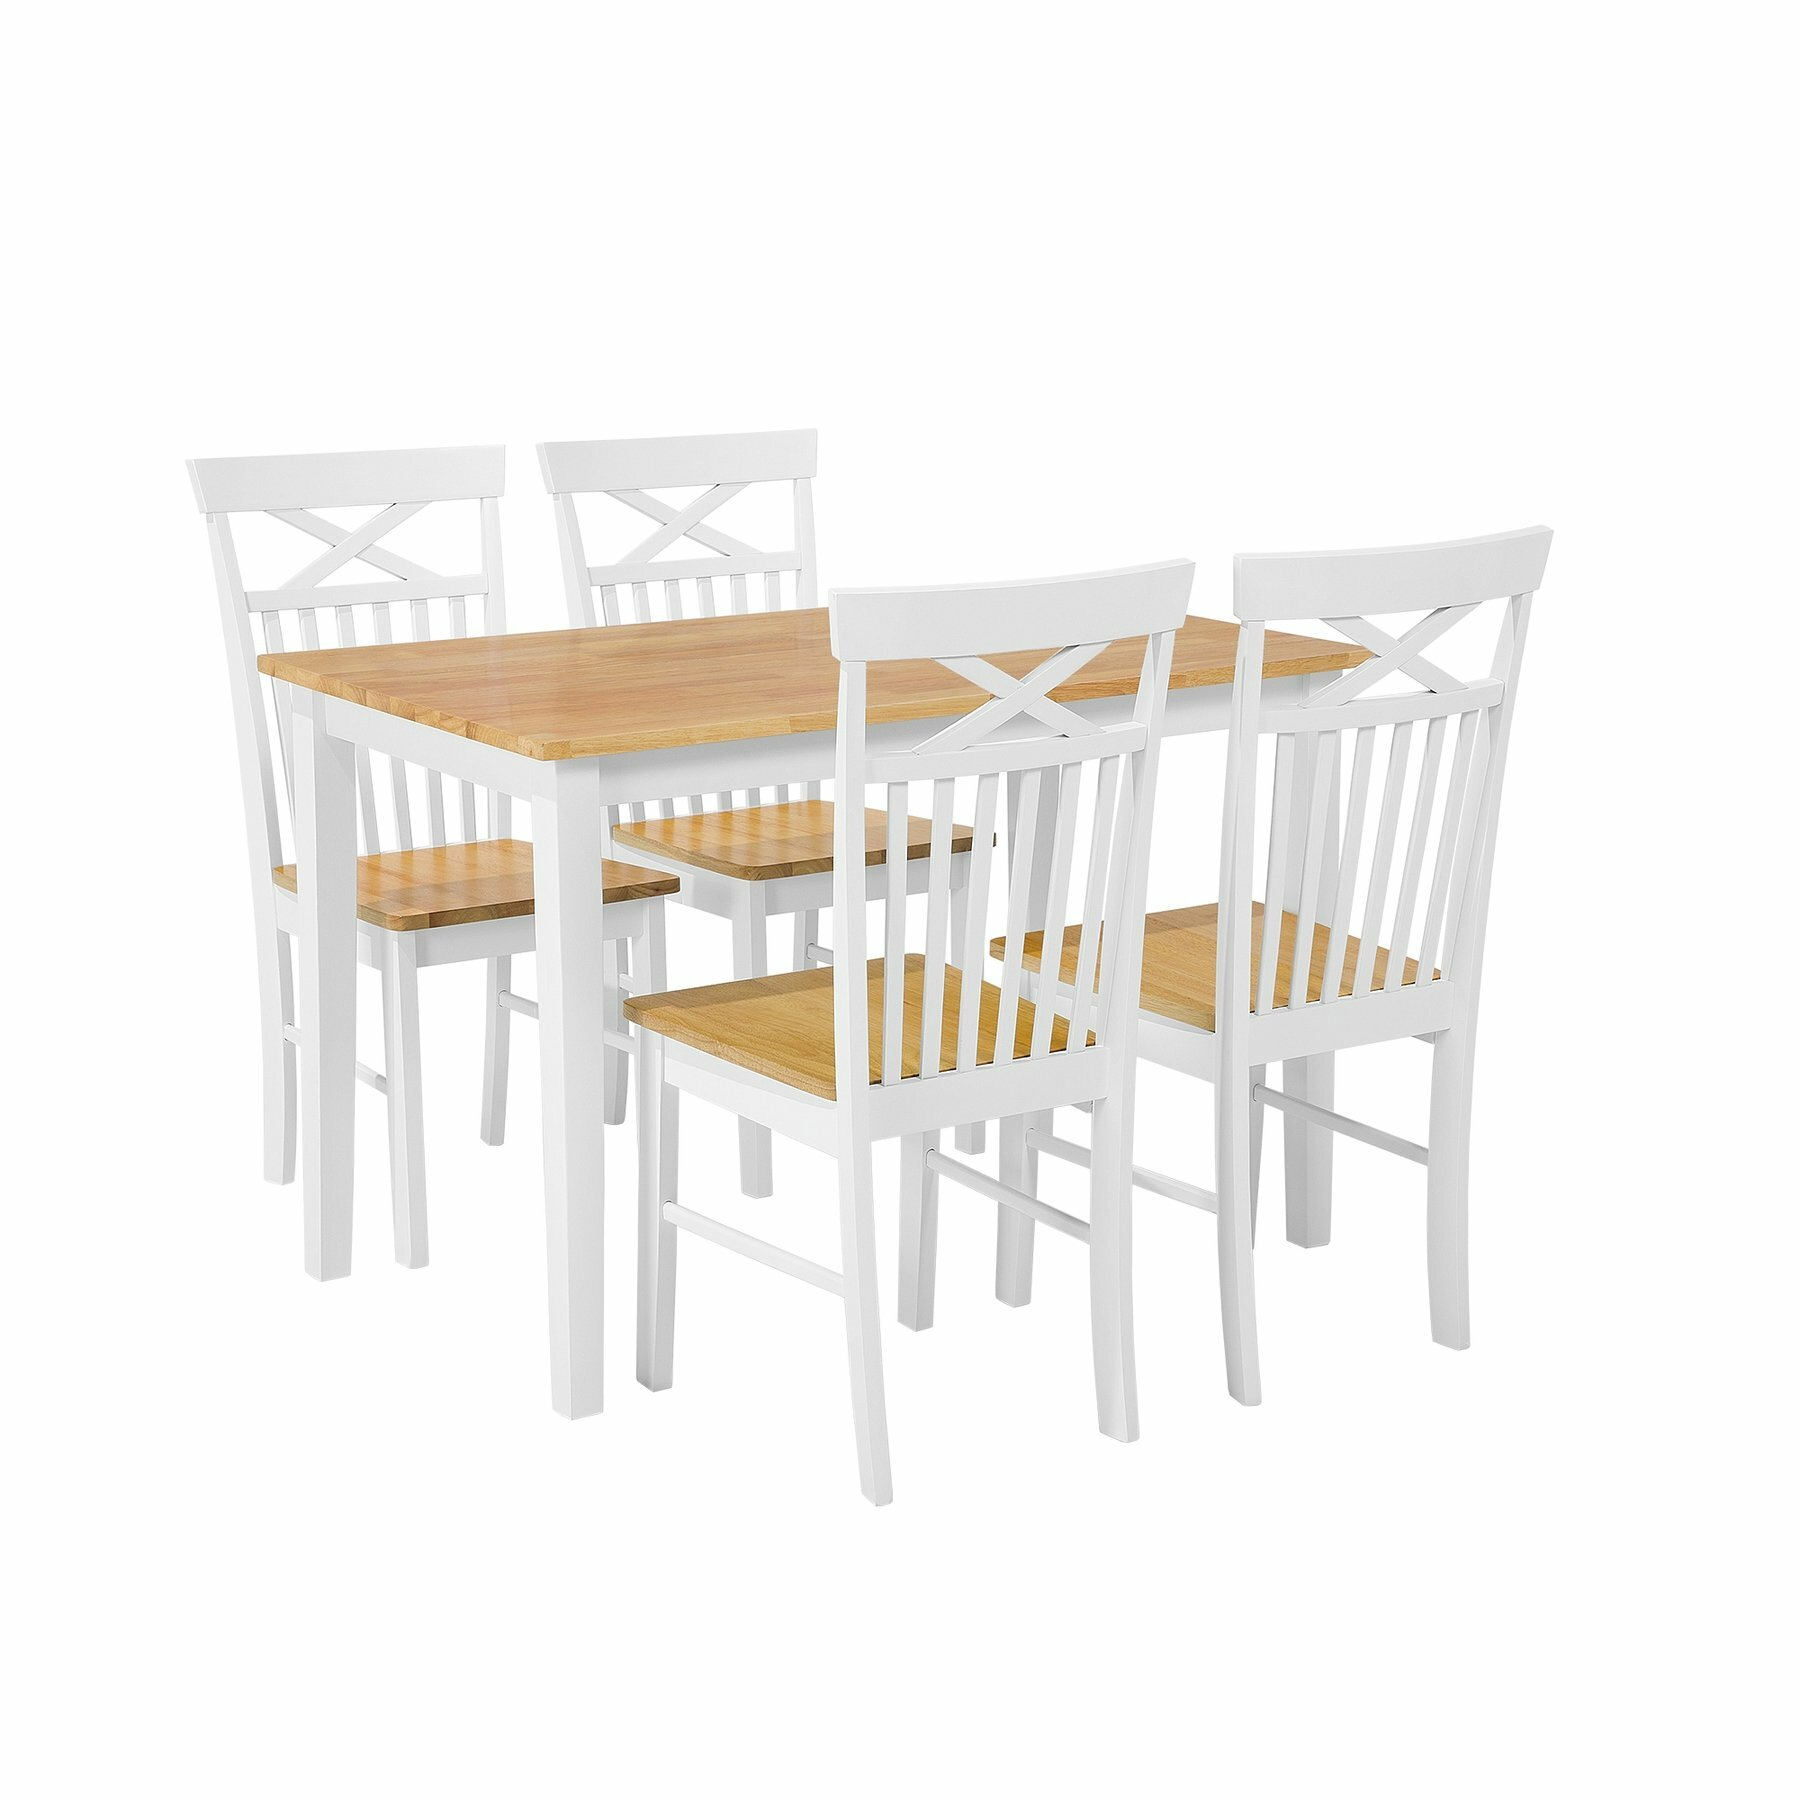 Scurlock 5 Piece Solid Wood Dining Set Within Most Popular Sundberg 5 Piece Solid Wood Dining Sets (Image 12 of 20)